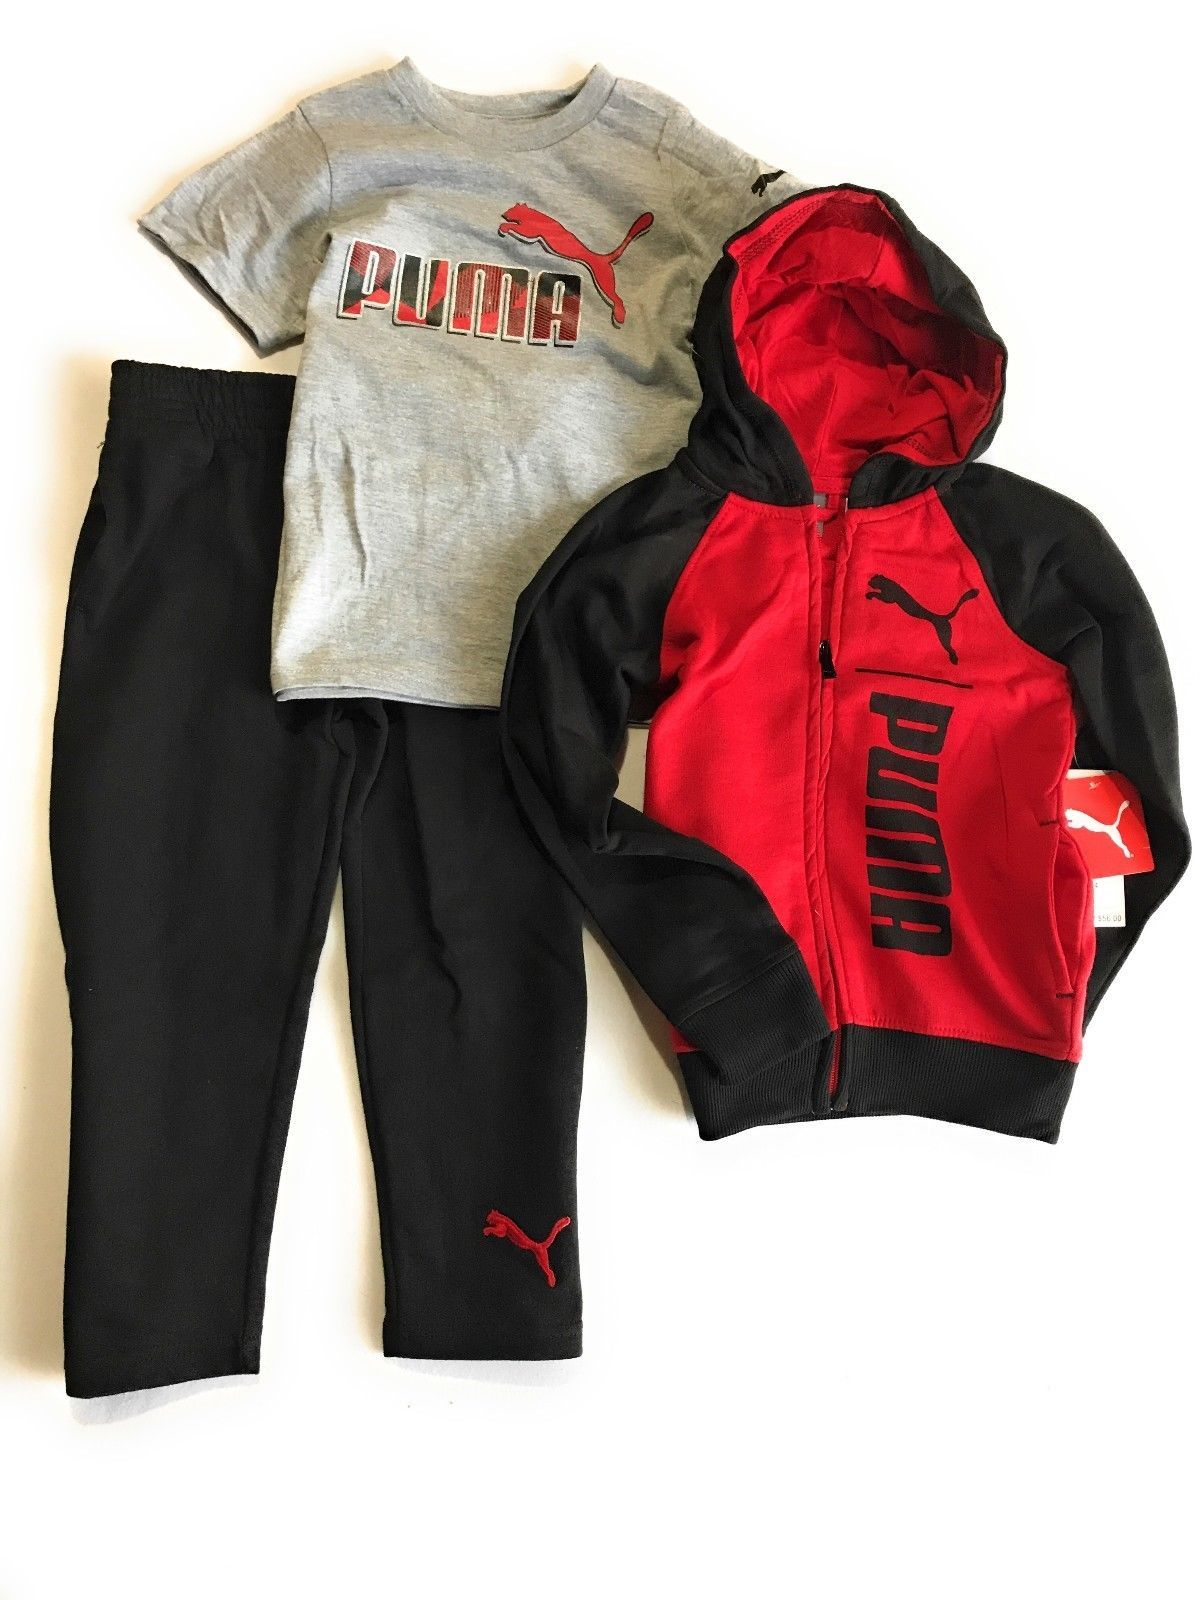 664a06c5aeb7 Outfits and Sets 156790  Puma Boys 3- Pieces Set Hoodie T-Shirt And Pants  -  BUY IT NOW ONLY   24.95 on  eBay  outfits  pieces  hoodie  pants